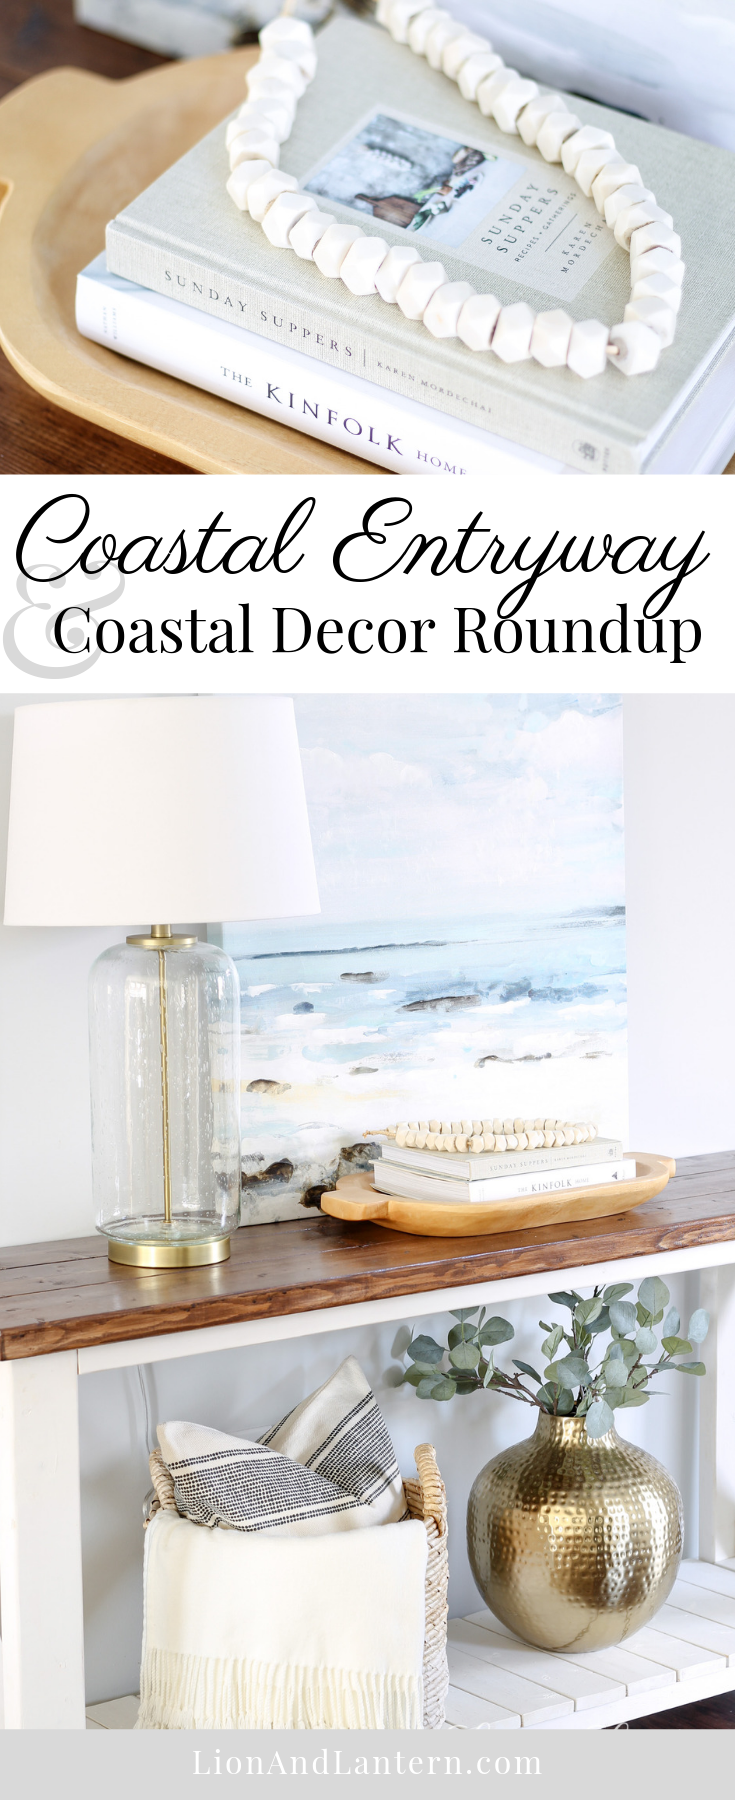 Easy Coastal Entryway & Coastal Decor Roundup at LionAndLantern.com | coastal farmhouse, coastal decor, modern, minimalist, bone beads, ocean painting, Ana White rustic x console